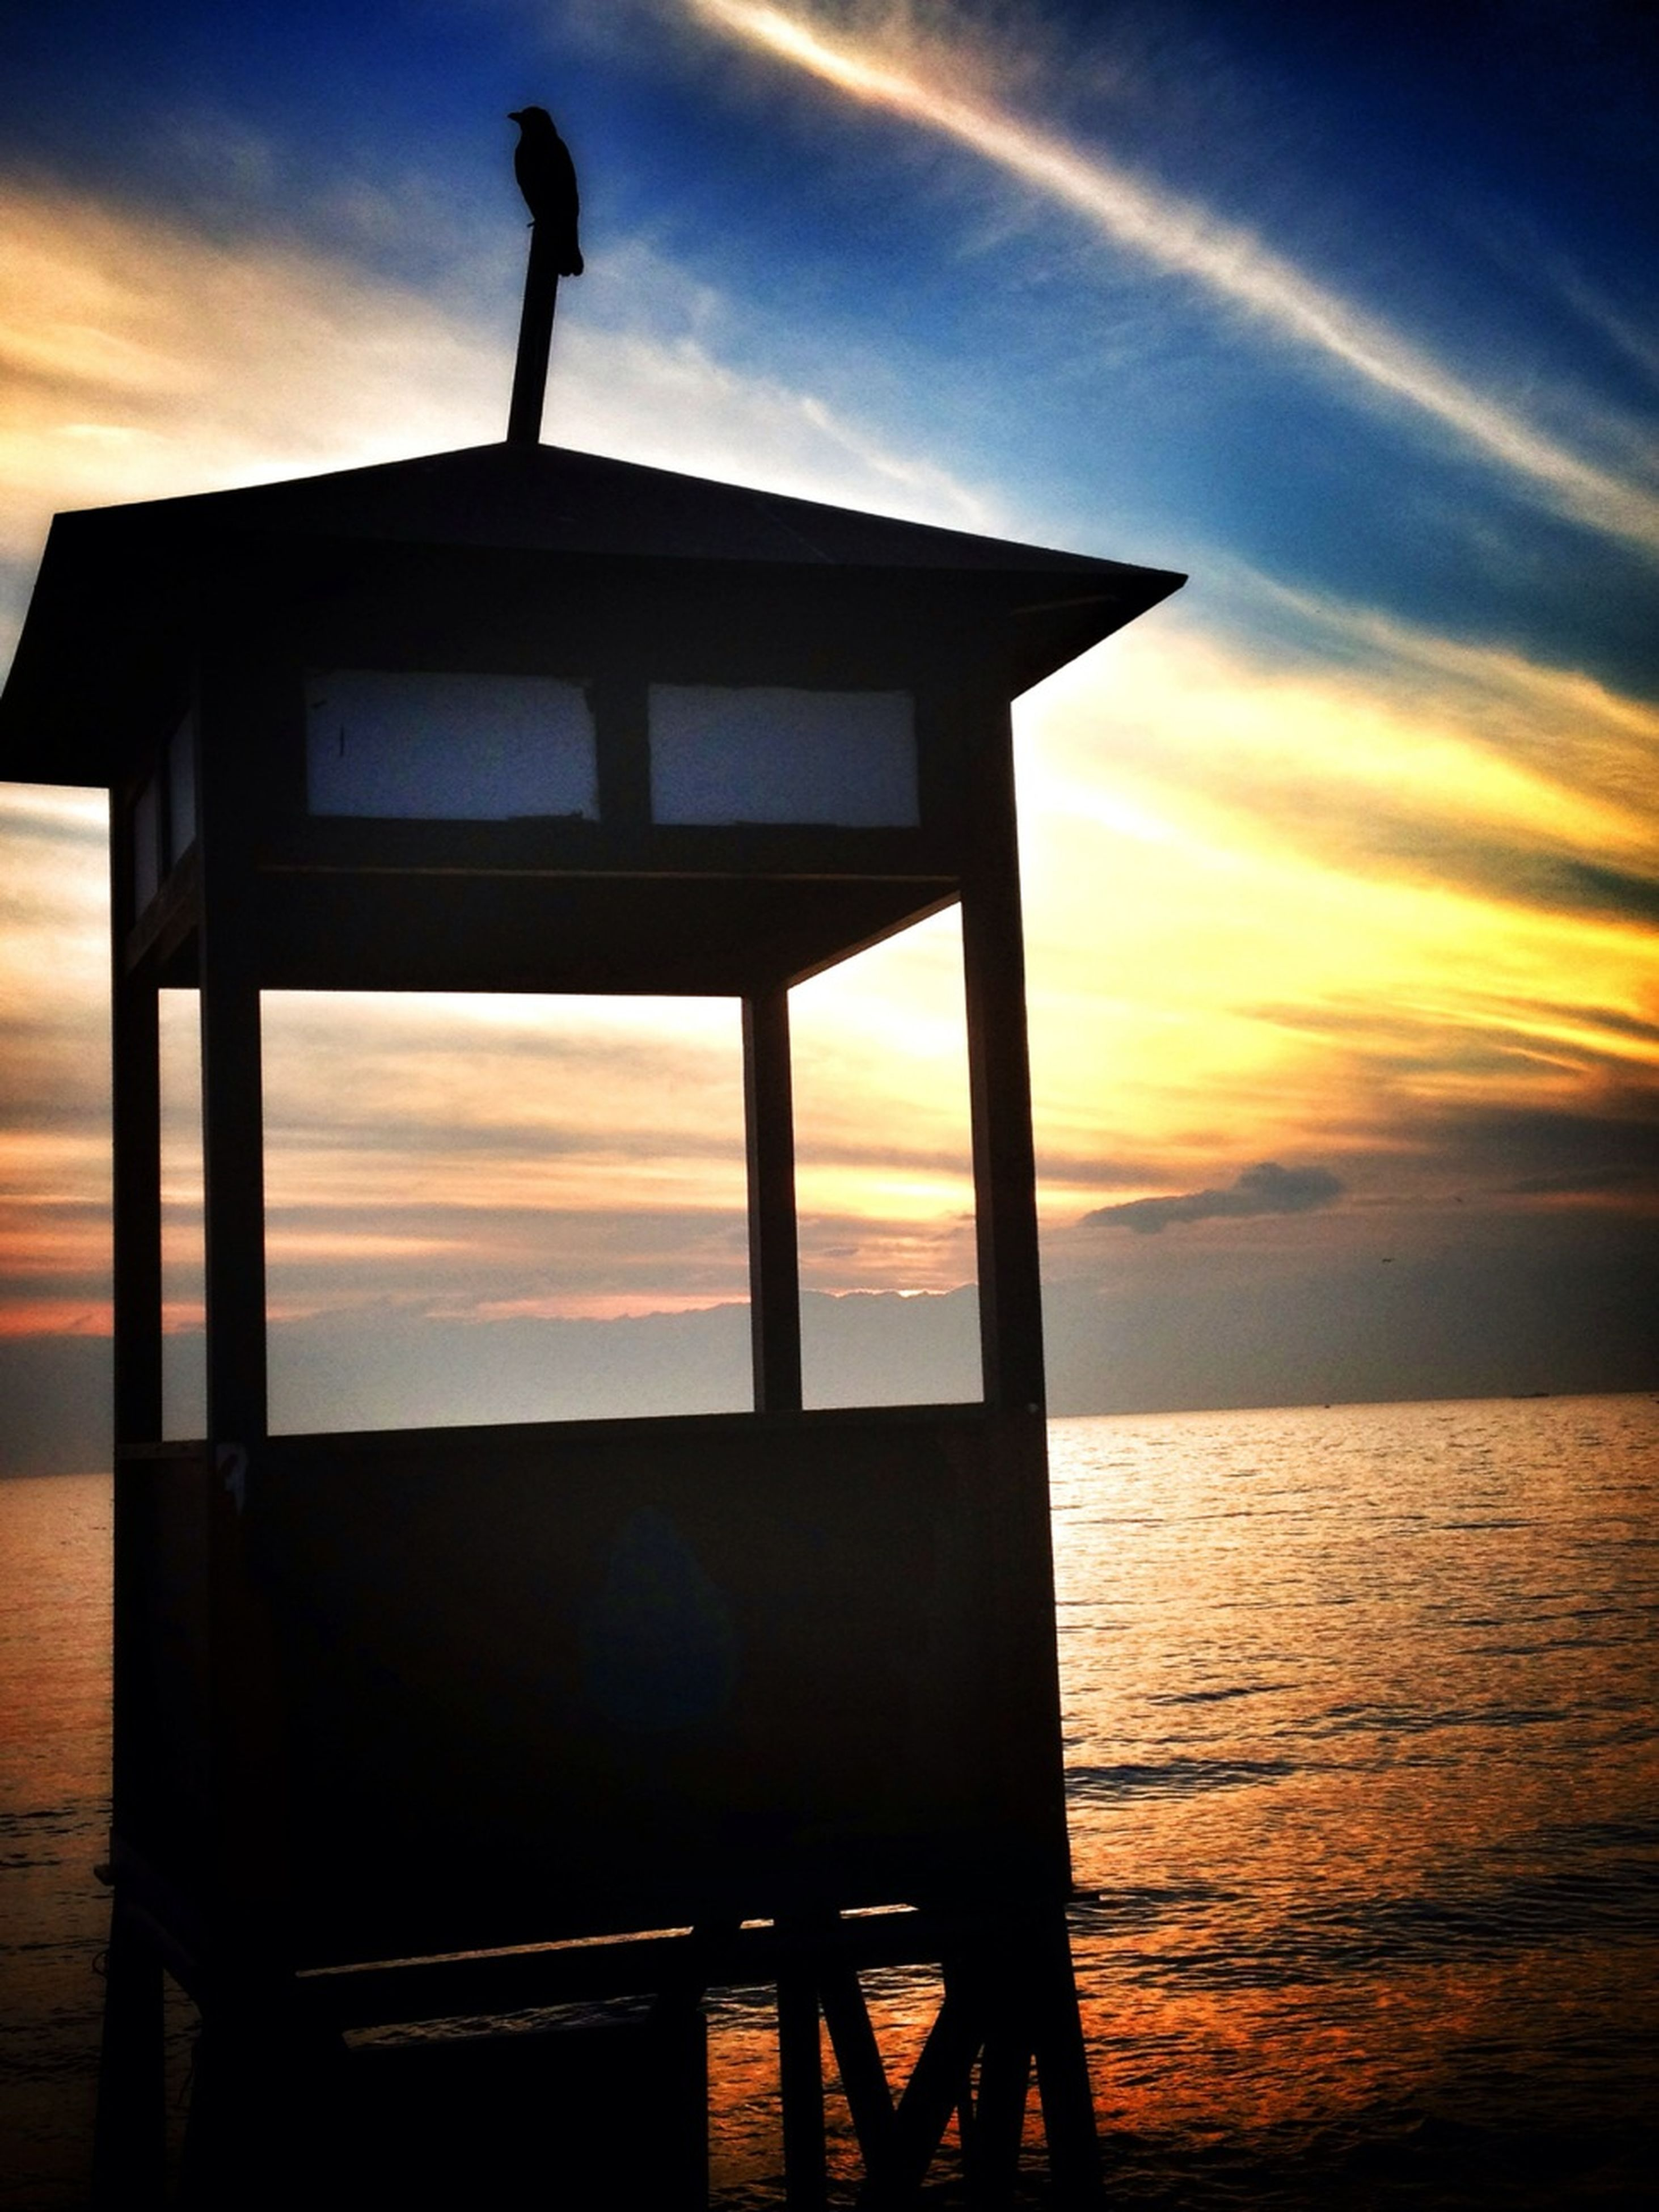 sunset, sky, sea, silhouette, water, horizon over water, orange color, built structure, cloud - sky, tranquility, scenics, cloud, architecture, beauty in nature, nature, tranquil scene, pier, idyllic, beach, outdoors